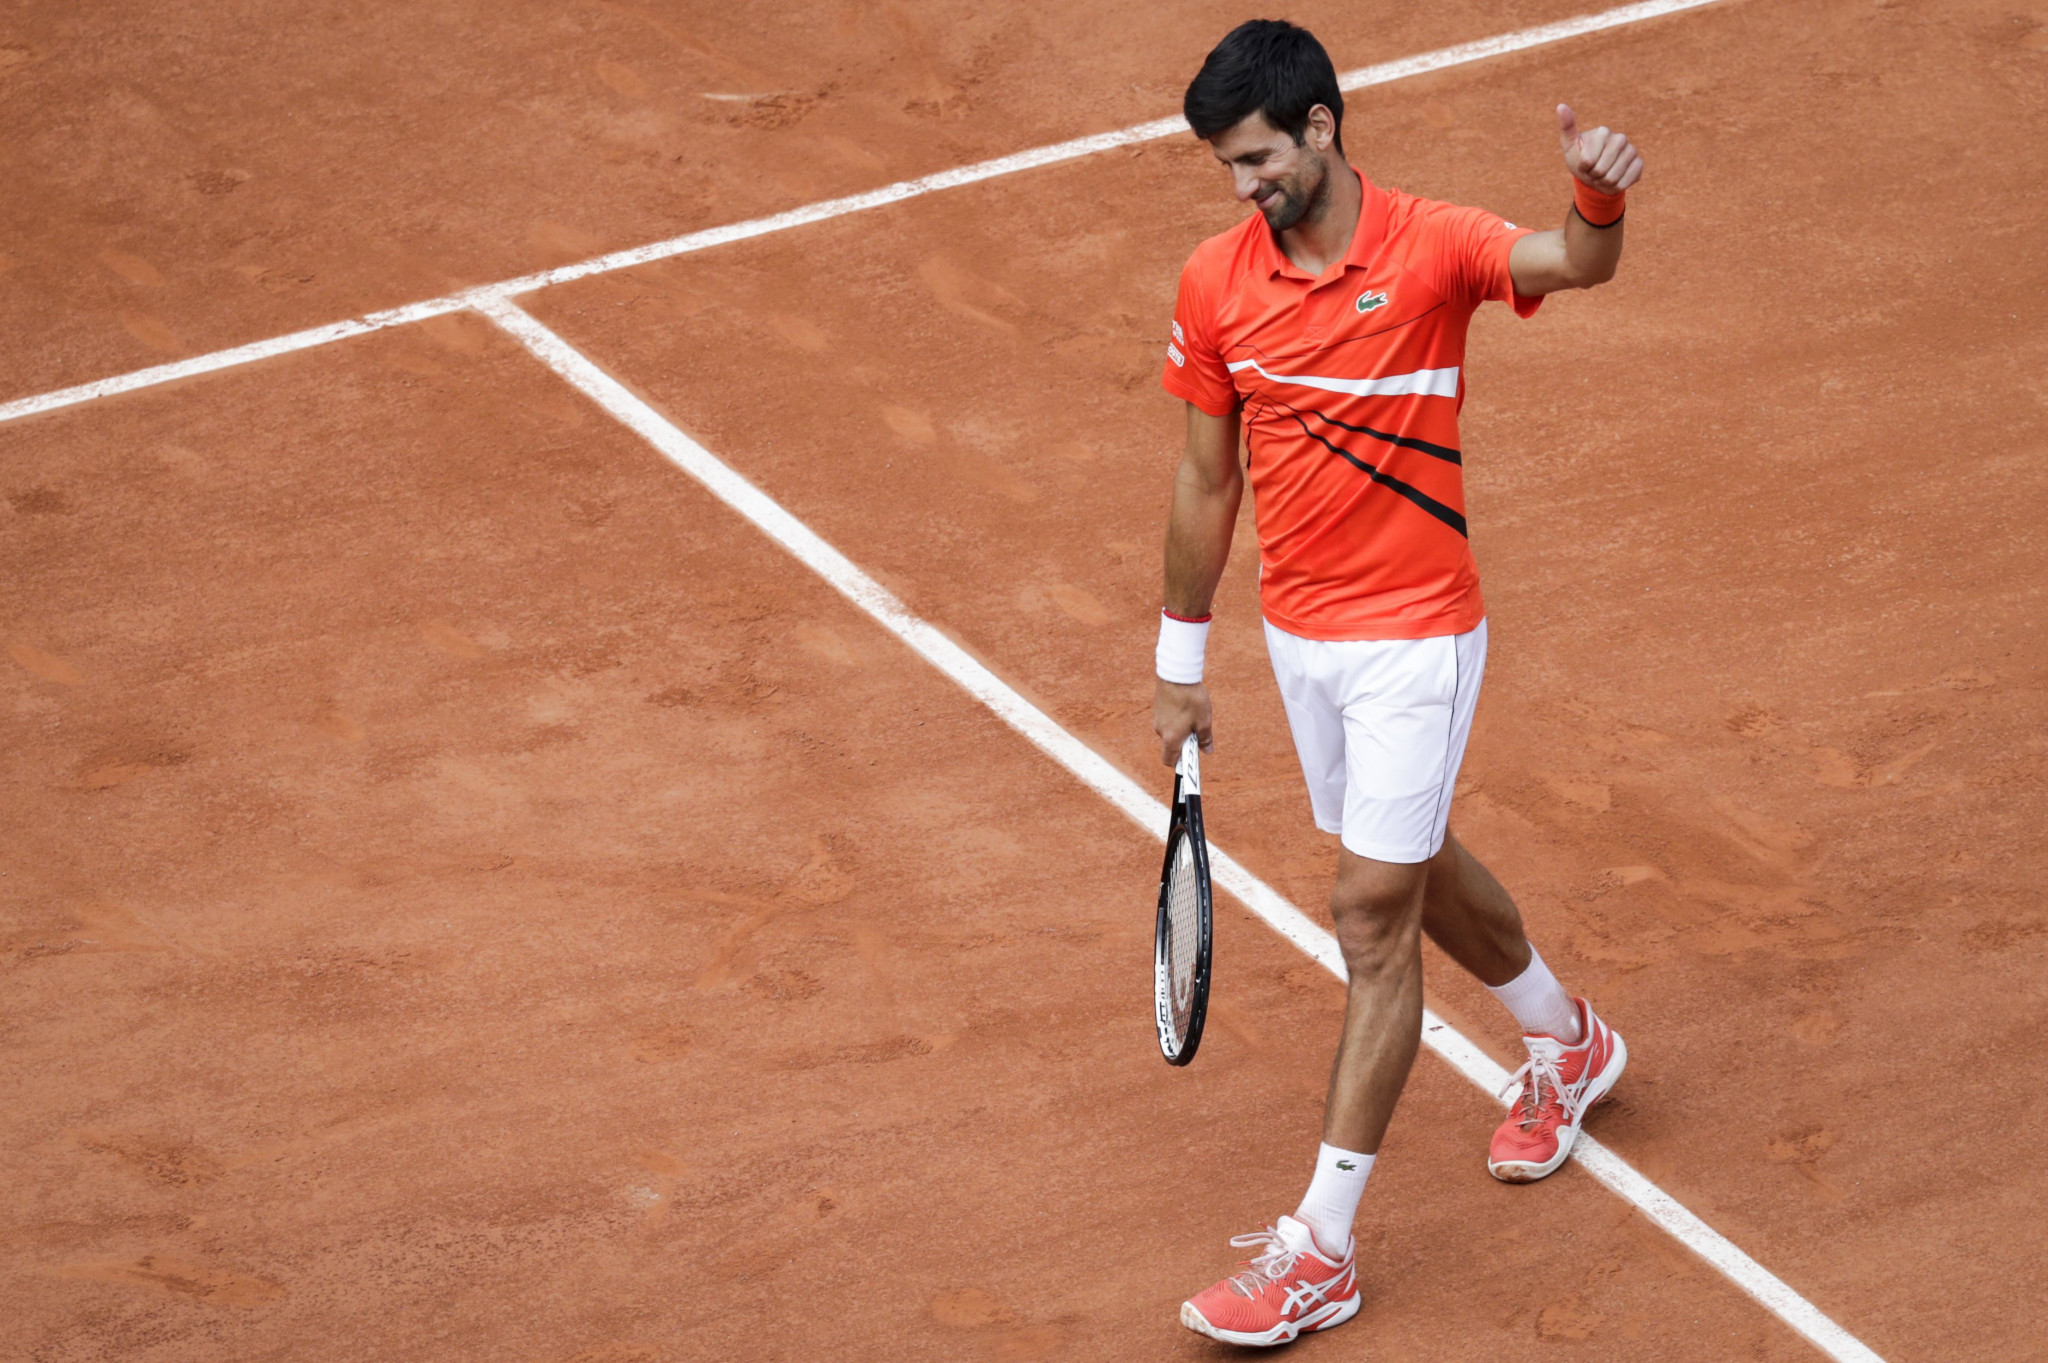 Djokovic and Nadal through to second round of French Open